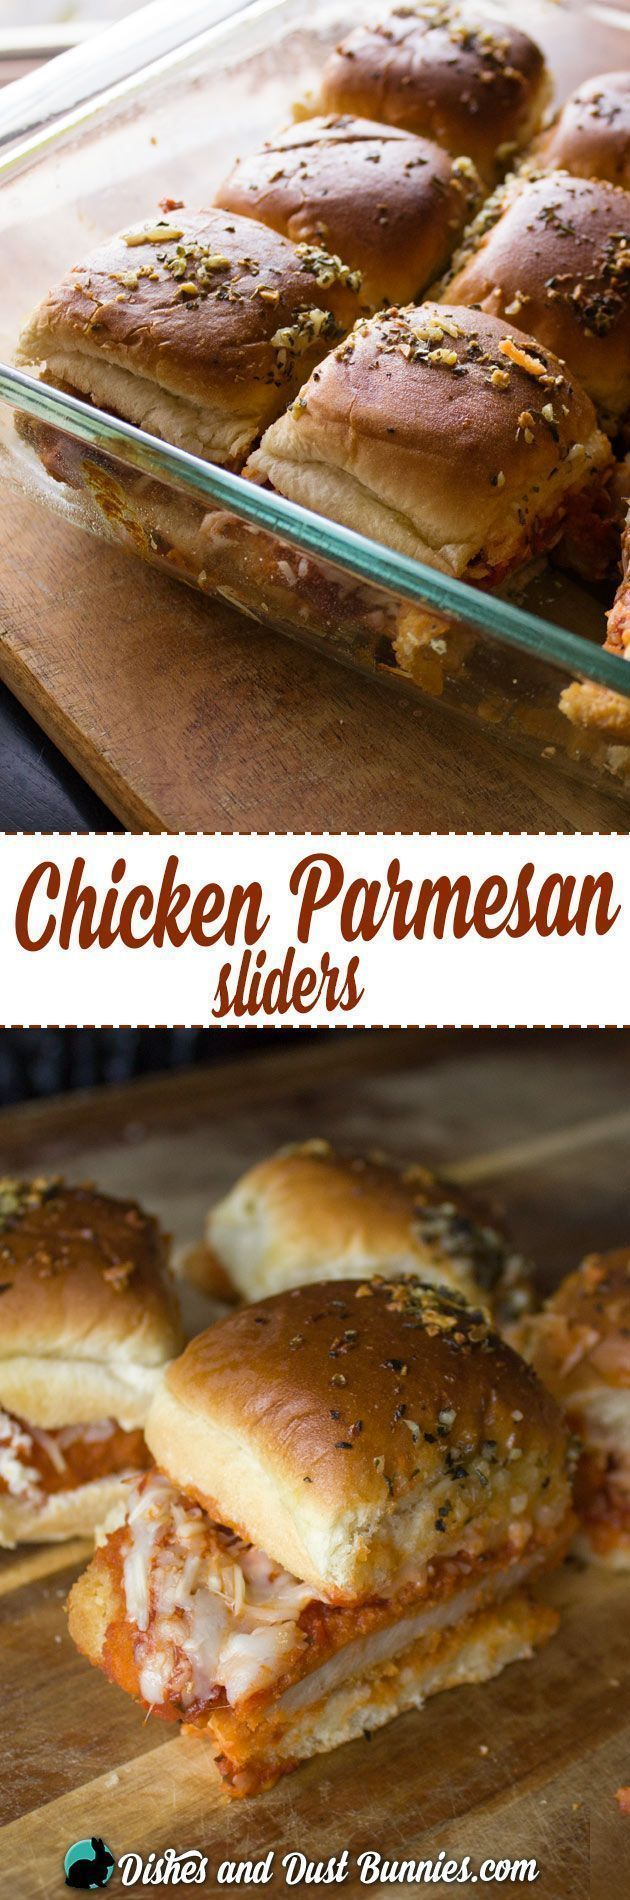 Baked Chicken Parmesan Sliders - So Easy & Delicious! Great as an appetizer, lunch or dinner sandwich.